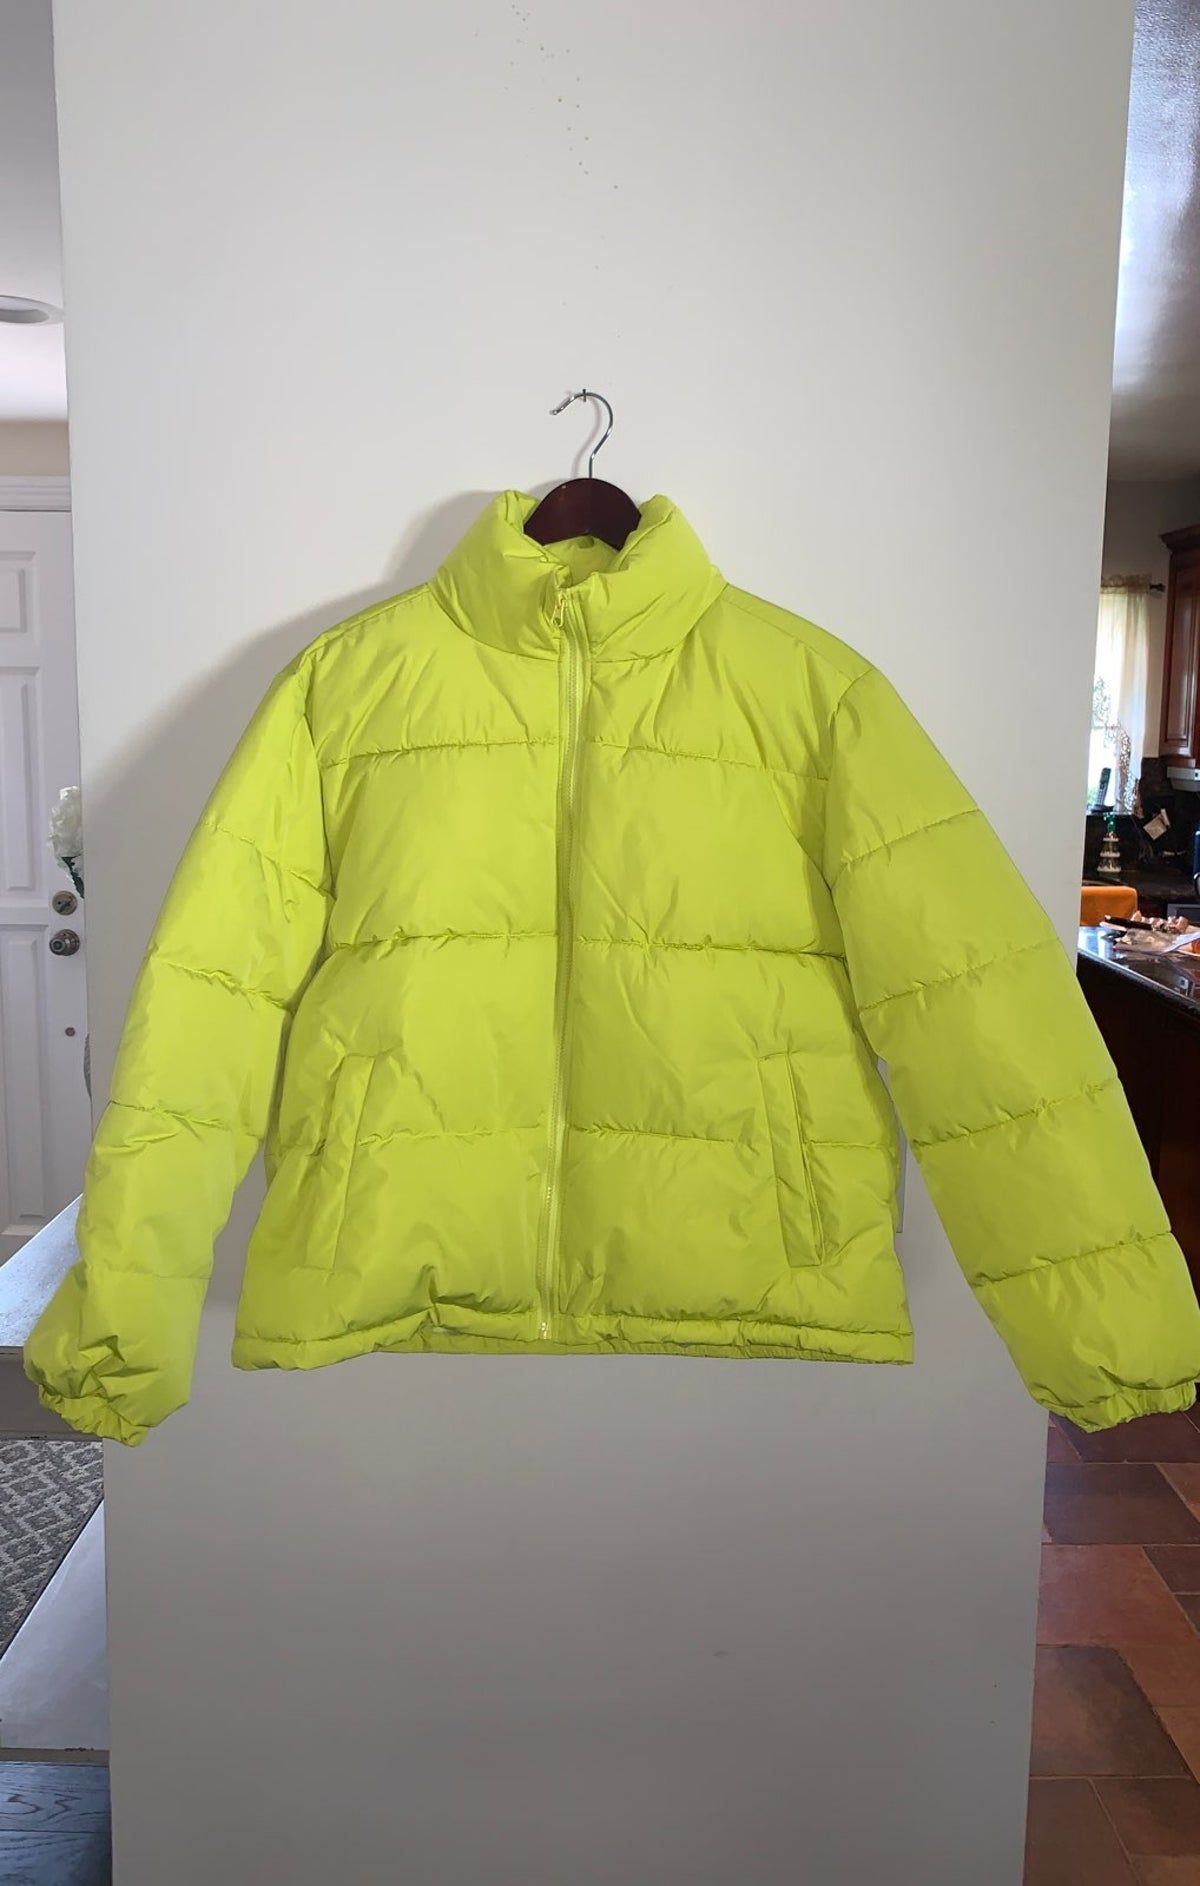 Forever 21 Neon Puffer Jacket In 2021 Puffer Jackets Jackets Clothes [ 1886 x 1200 Pixel ]